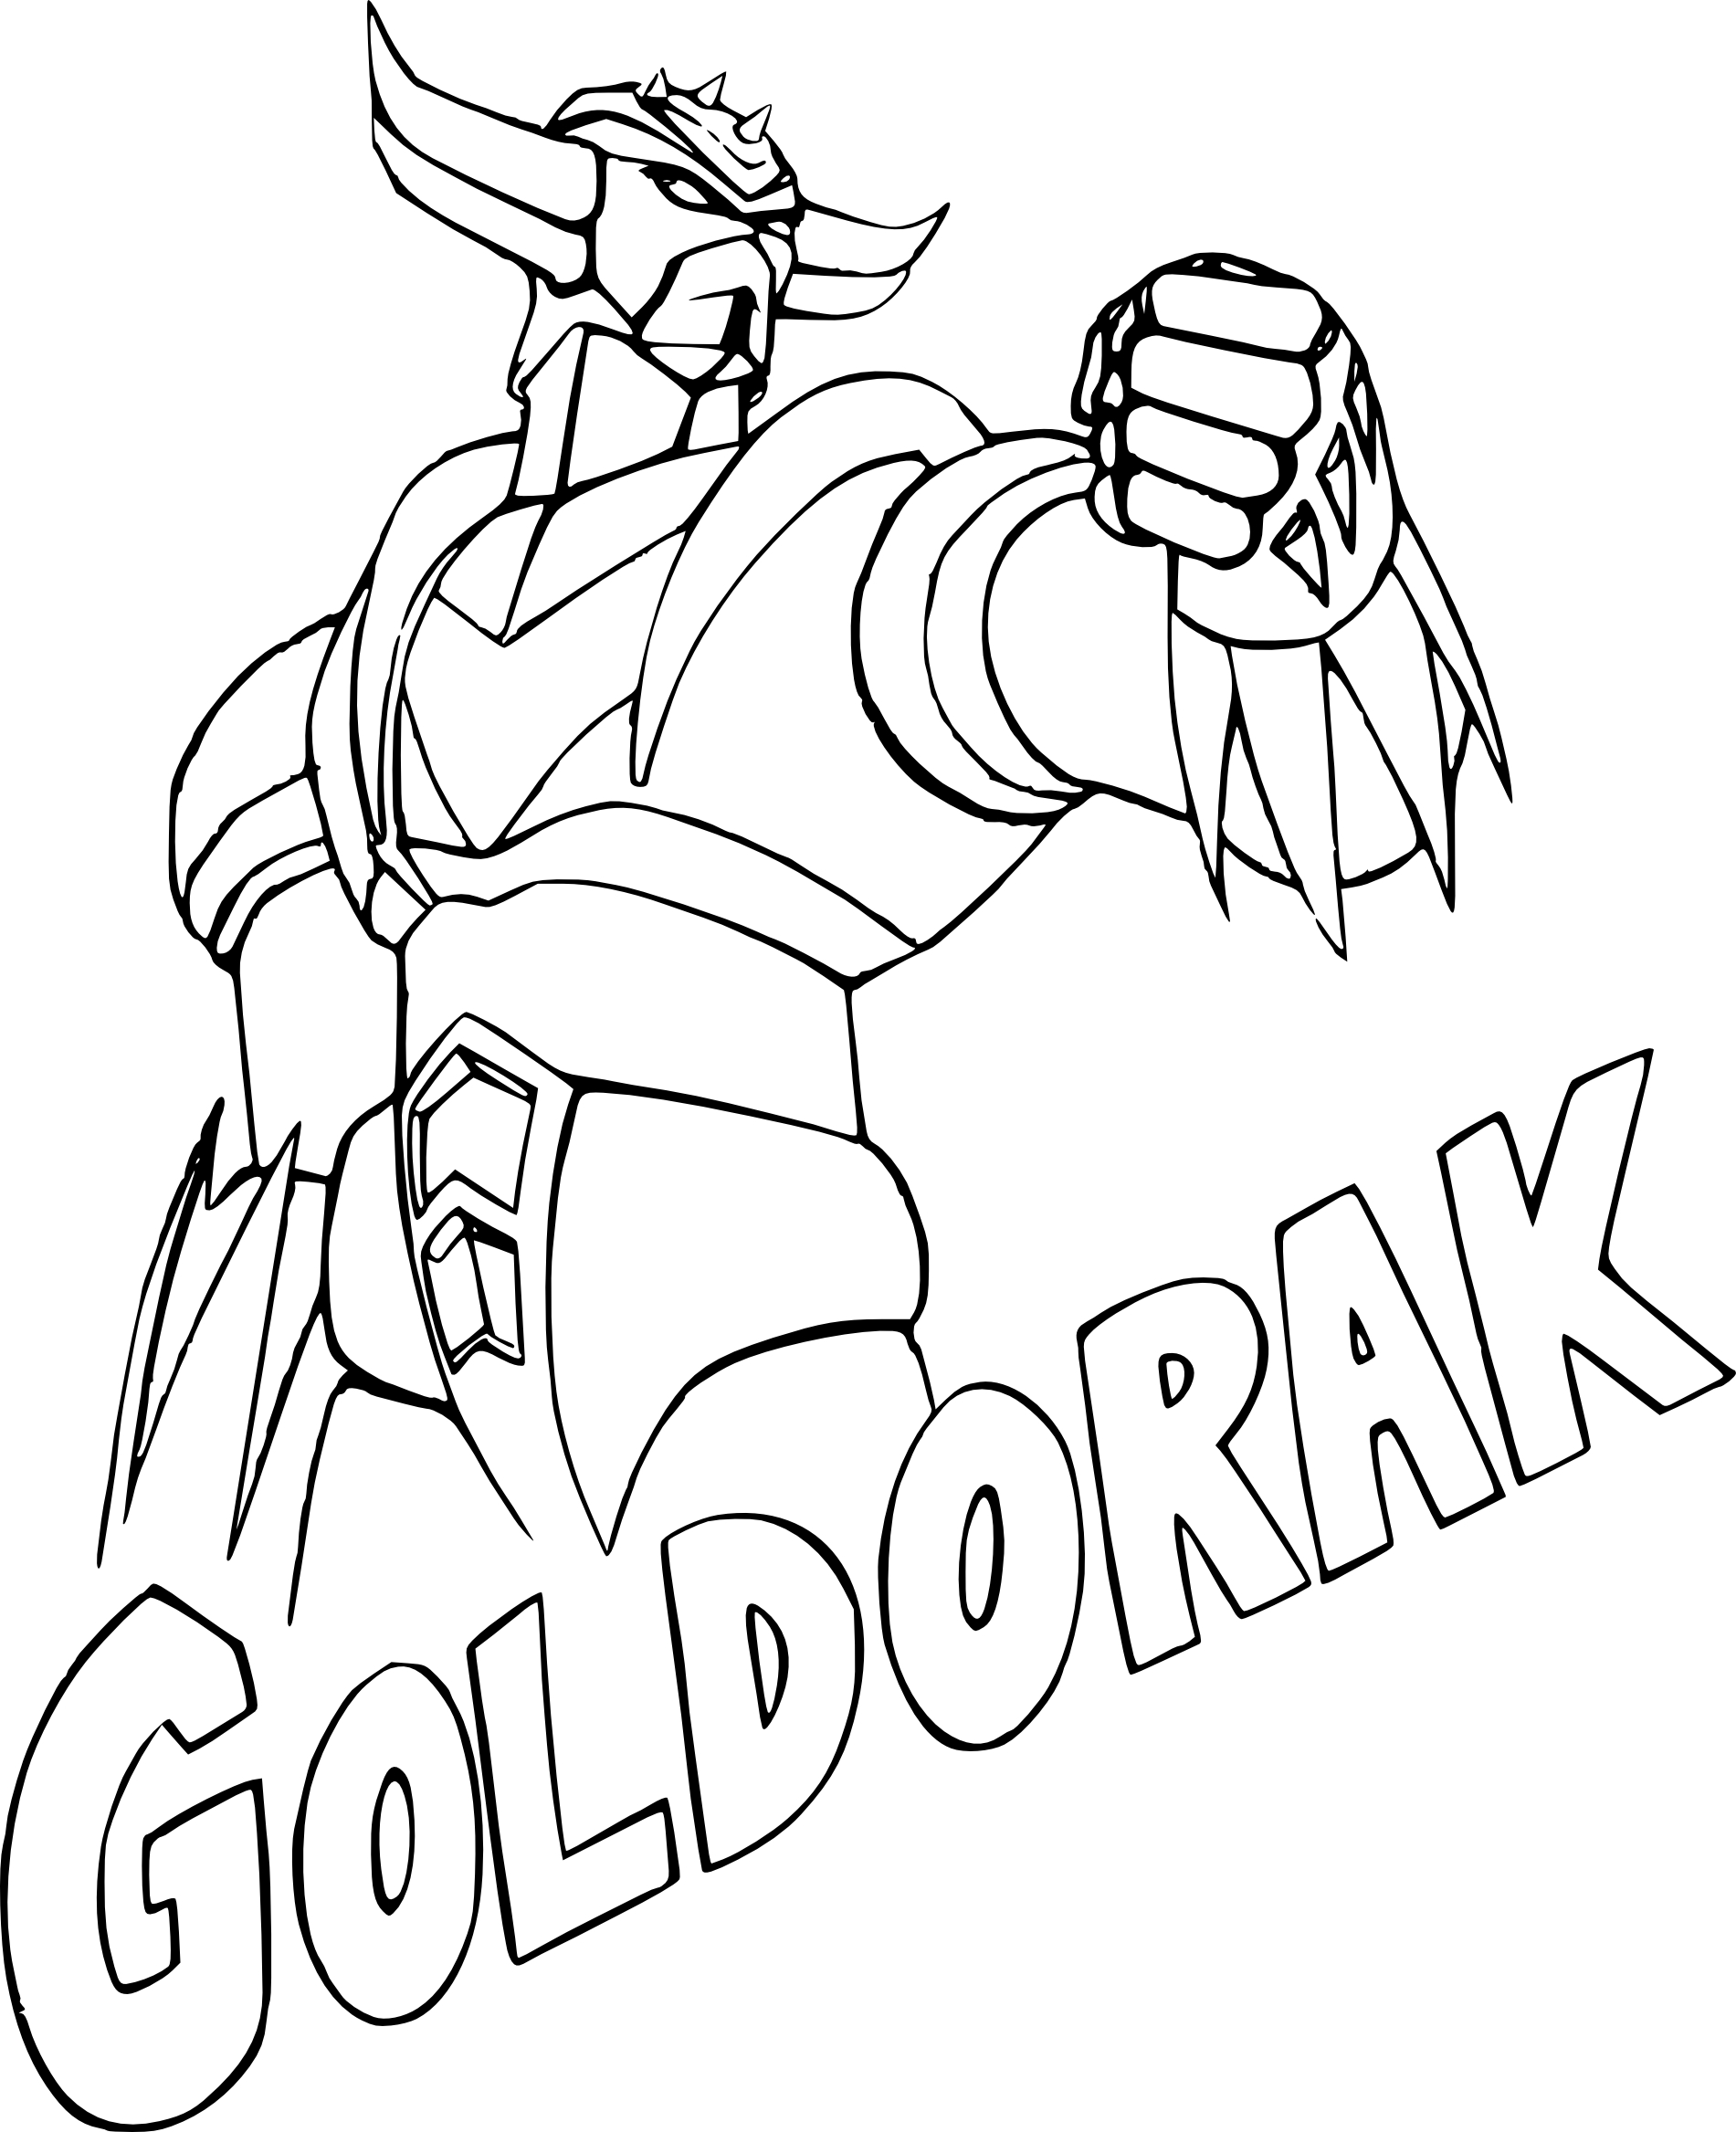 Coloriage Goldorak